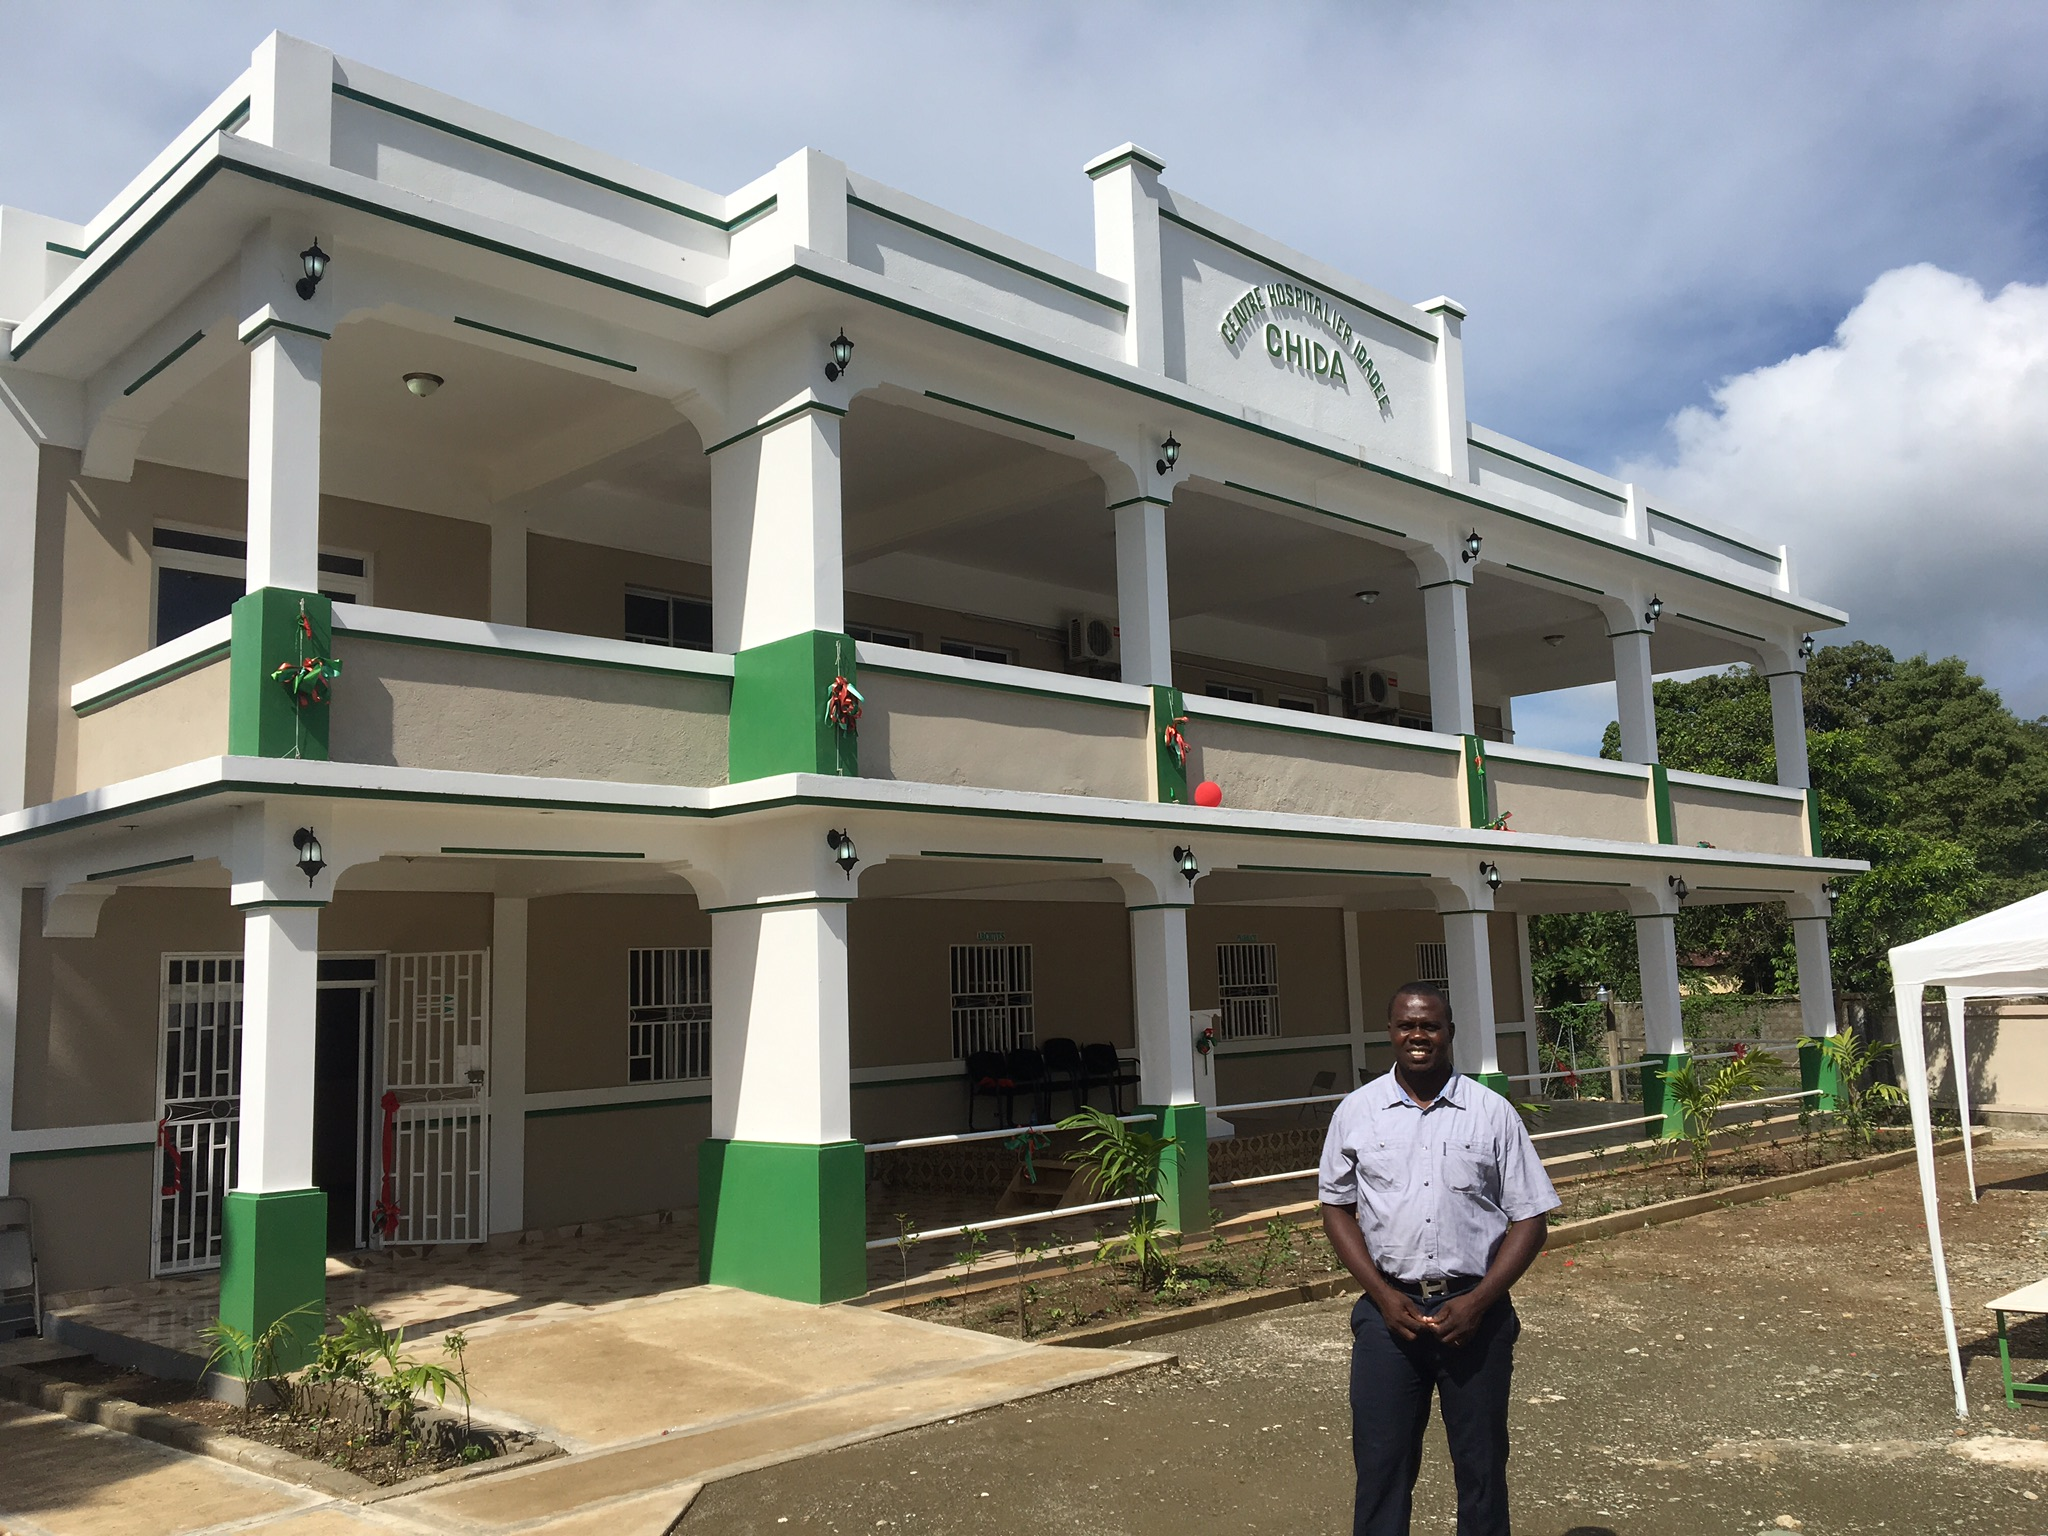 Dr. Wislyn Avenard (PKF Medical Director in Haiti) poses for a photo outside of the newly opened CHIDA Hospital in Cap Haitien, Haiti.